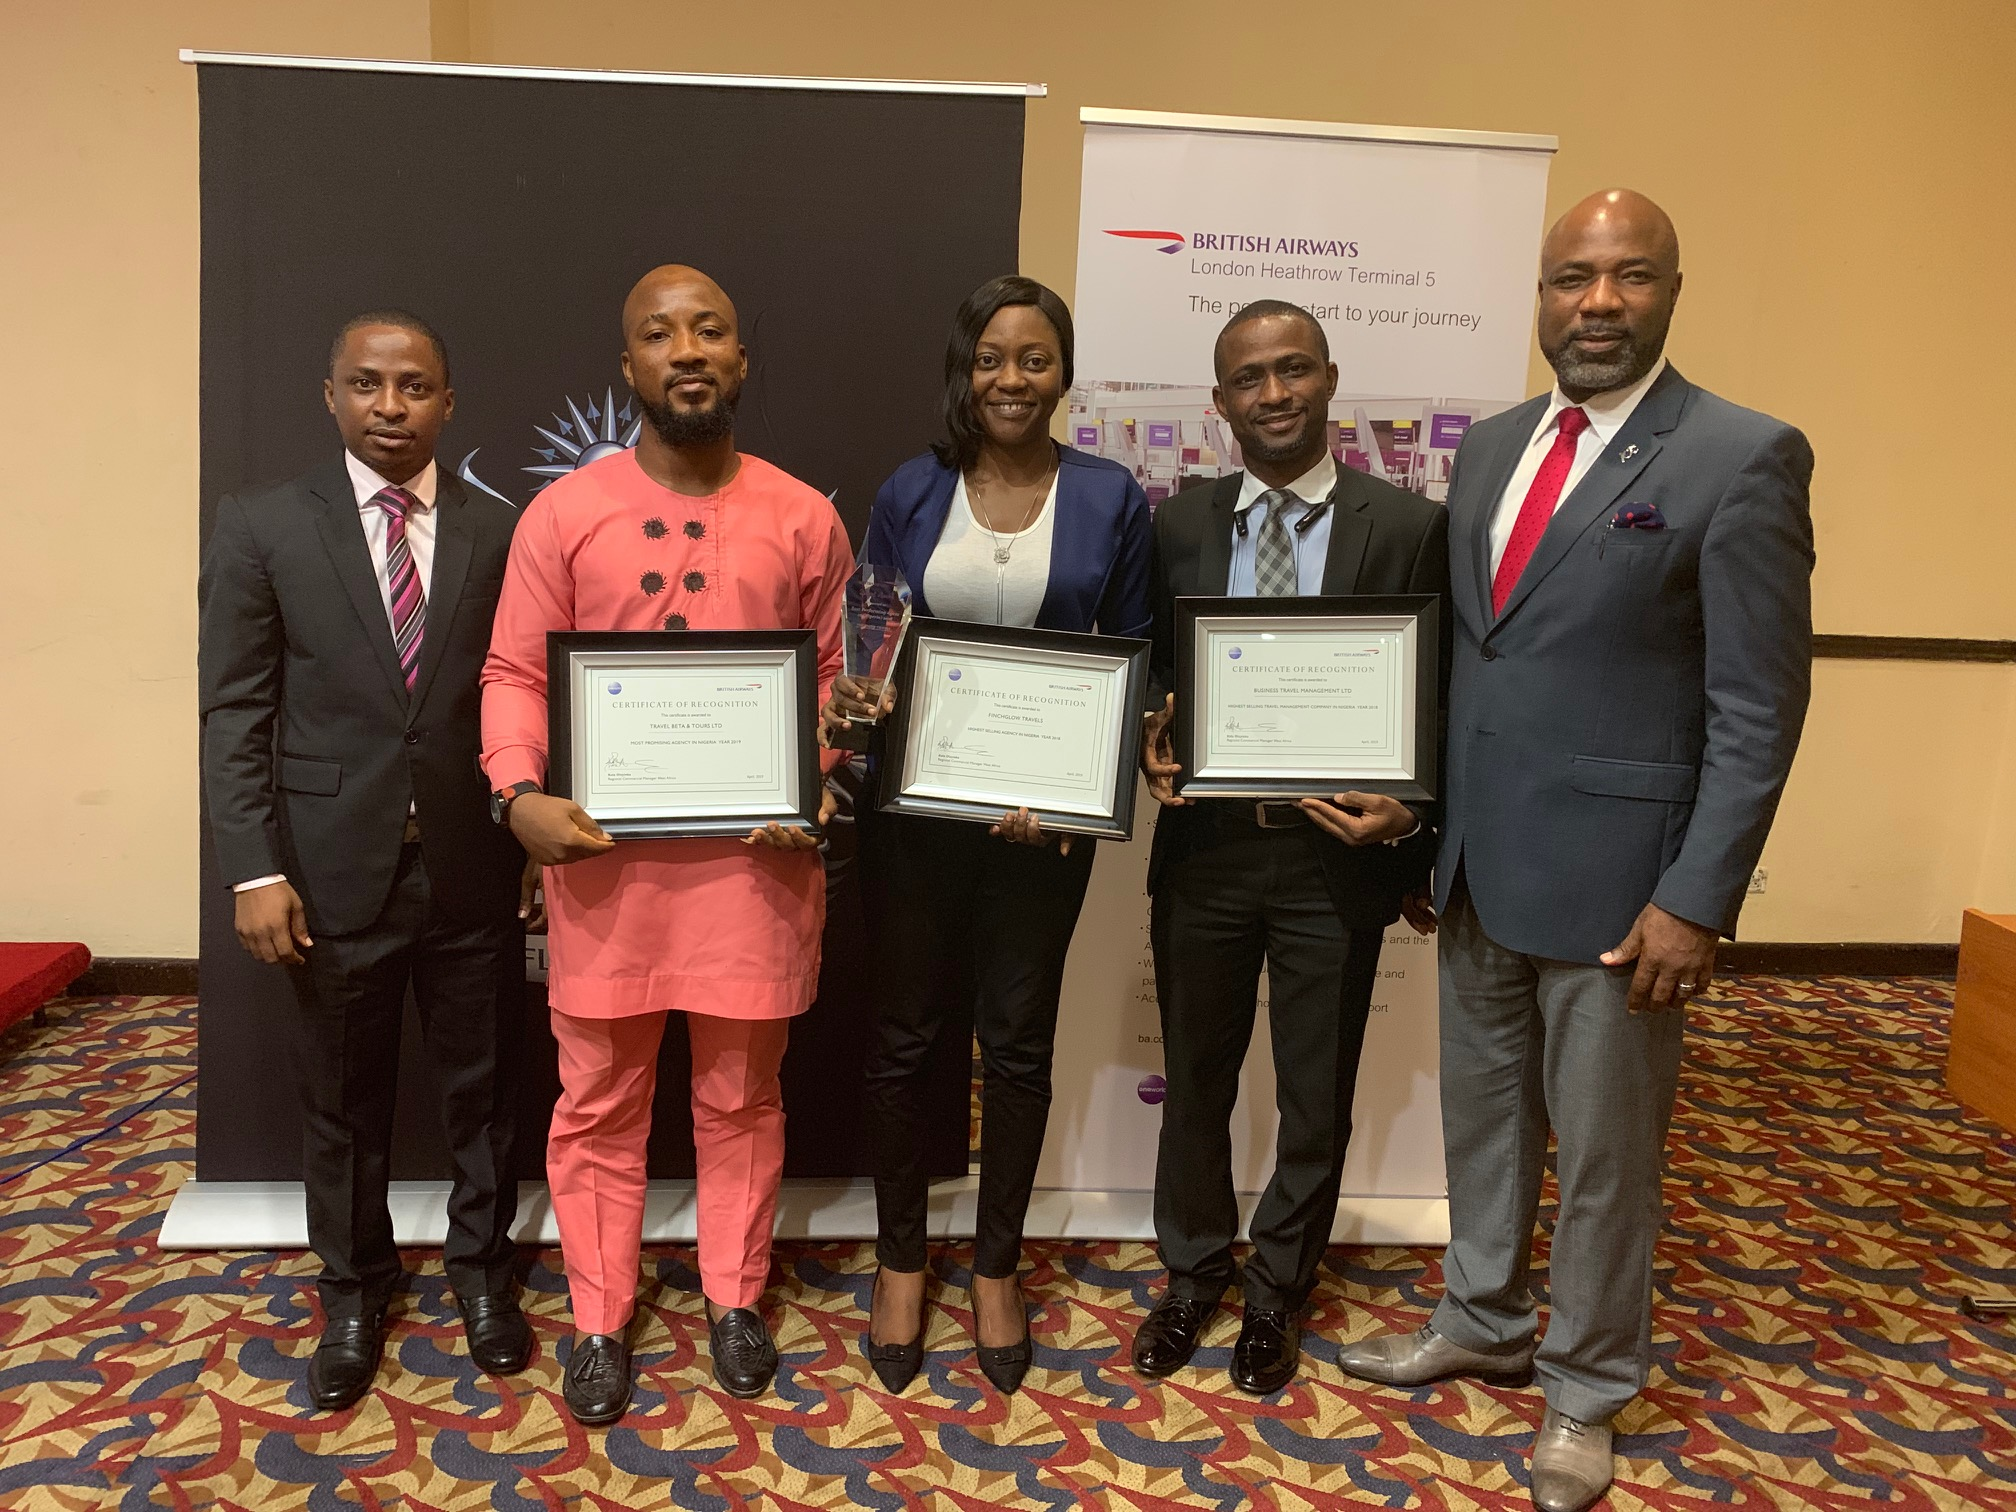 L-R: Bodunrin Olowolagba, British Airways Sales Manager Nigeria; Moses Adekoya, Deputy Operations Manager, Travel Beta & Tours LTD and Winner of Most Promising Agent so far in year 2019; Josephine Duyile, Head Finchglow Travels and Winner of the Highest Selling Agent in Nigeria and Highest selling agent to London 2018; Mutiu Badmus, General Manager Operations, Business Travel Management and Highest selling TMC in Nigeria 2018 and Ademola Sanya, British Airways Trade Sales Manager Nigeria during the award presentation at the Trade Event held in Lagos recently.